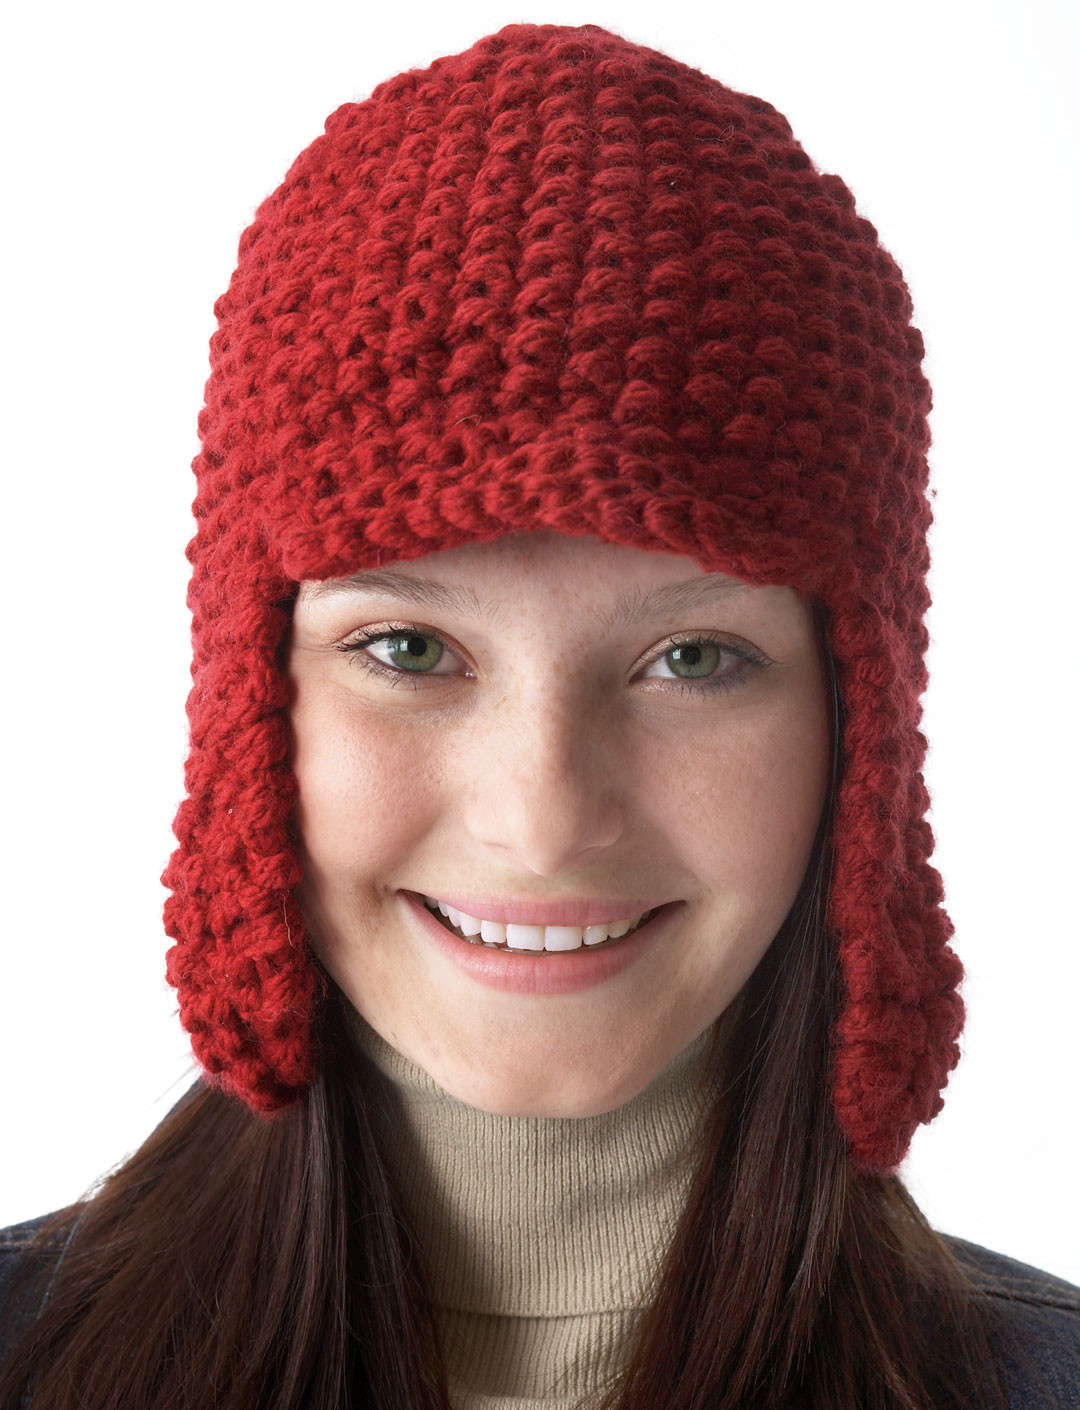 Chunky Earflap Hat Crochet Pattern Free : Earflap Hat With Peak - Patterns Yarnspirations